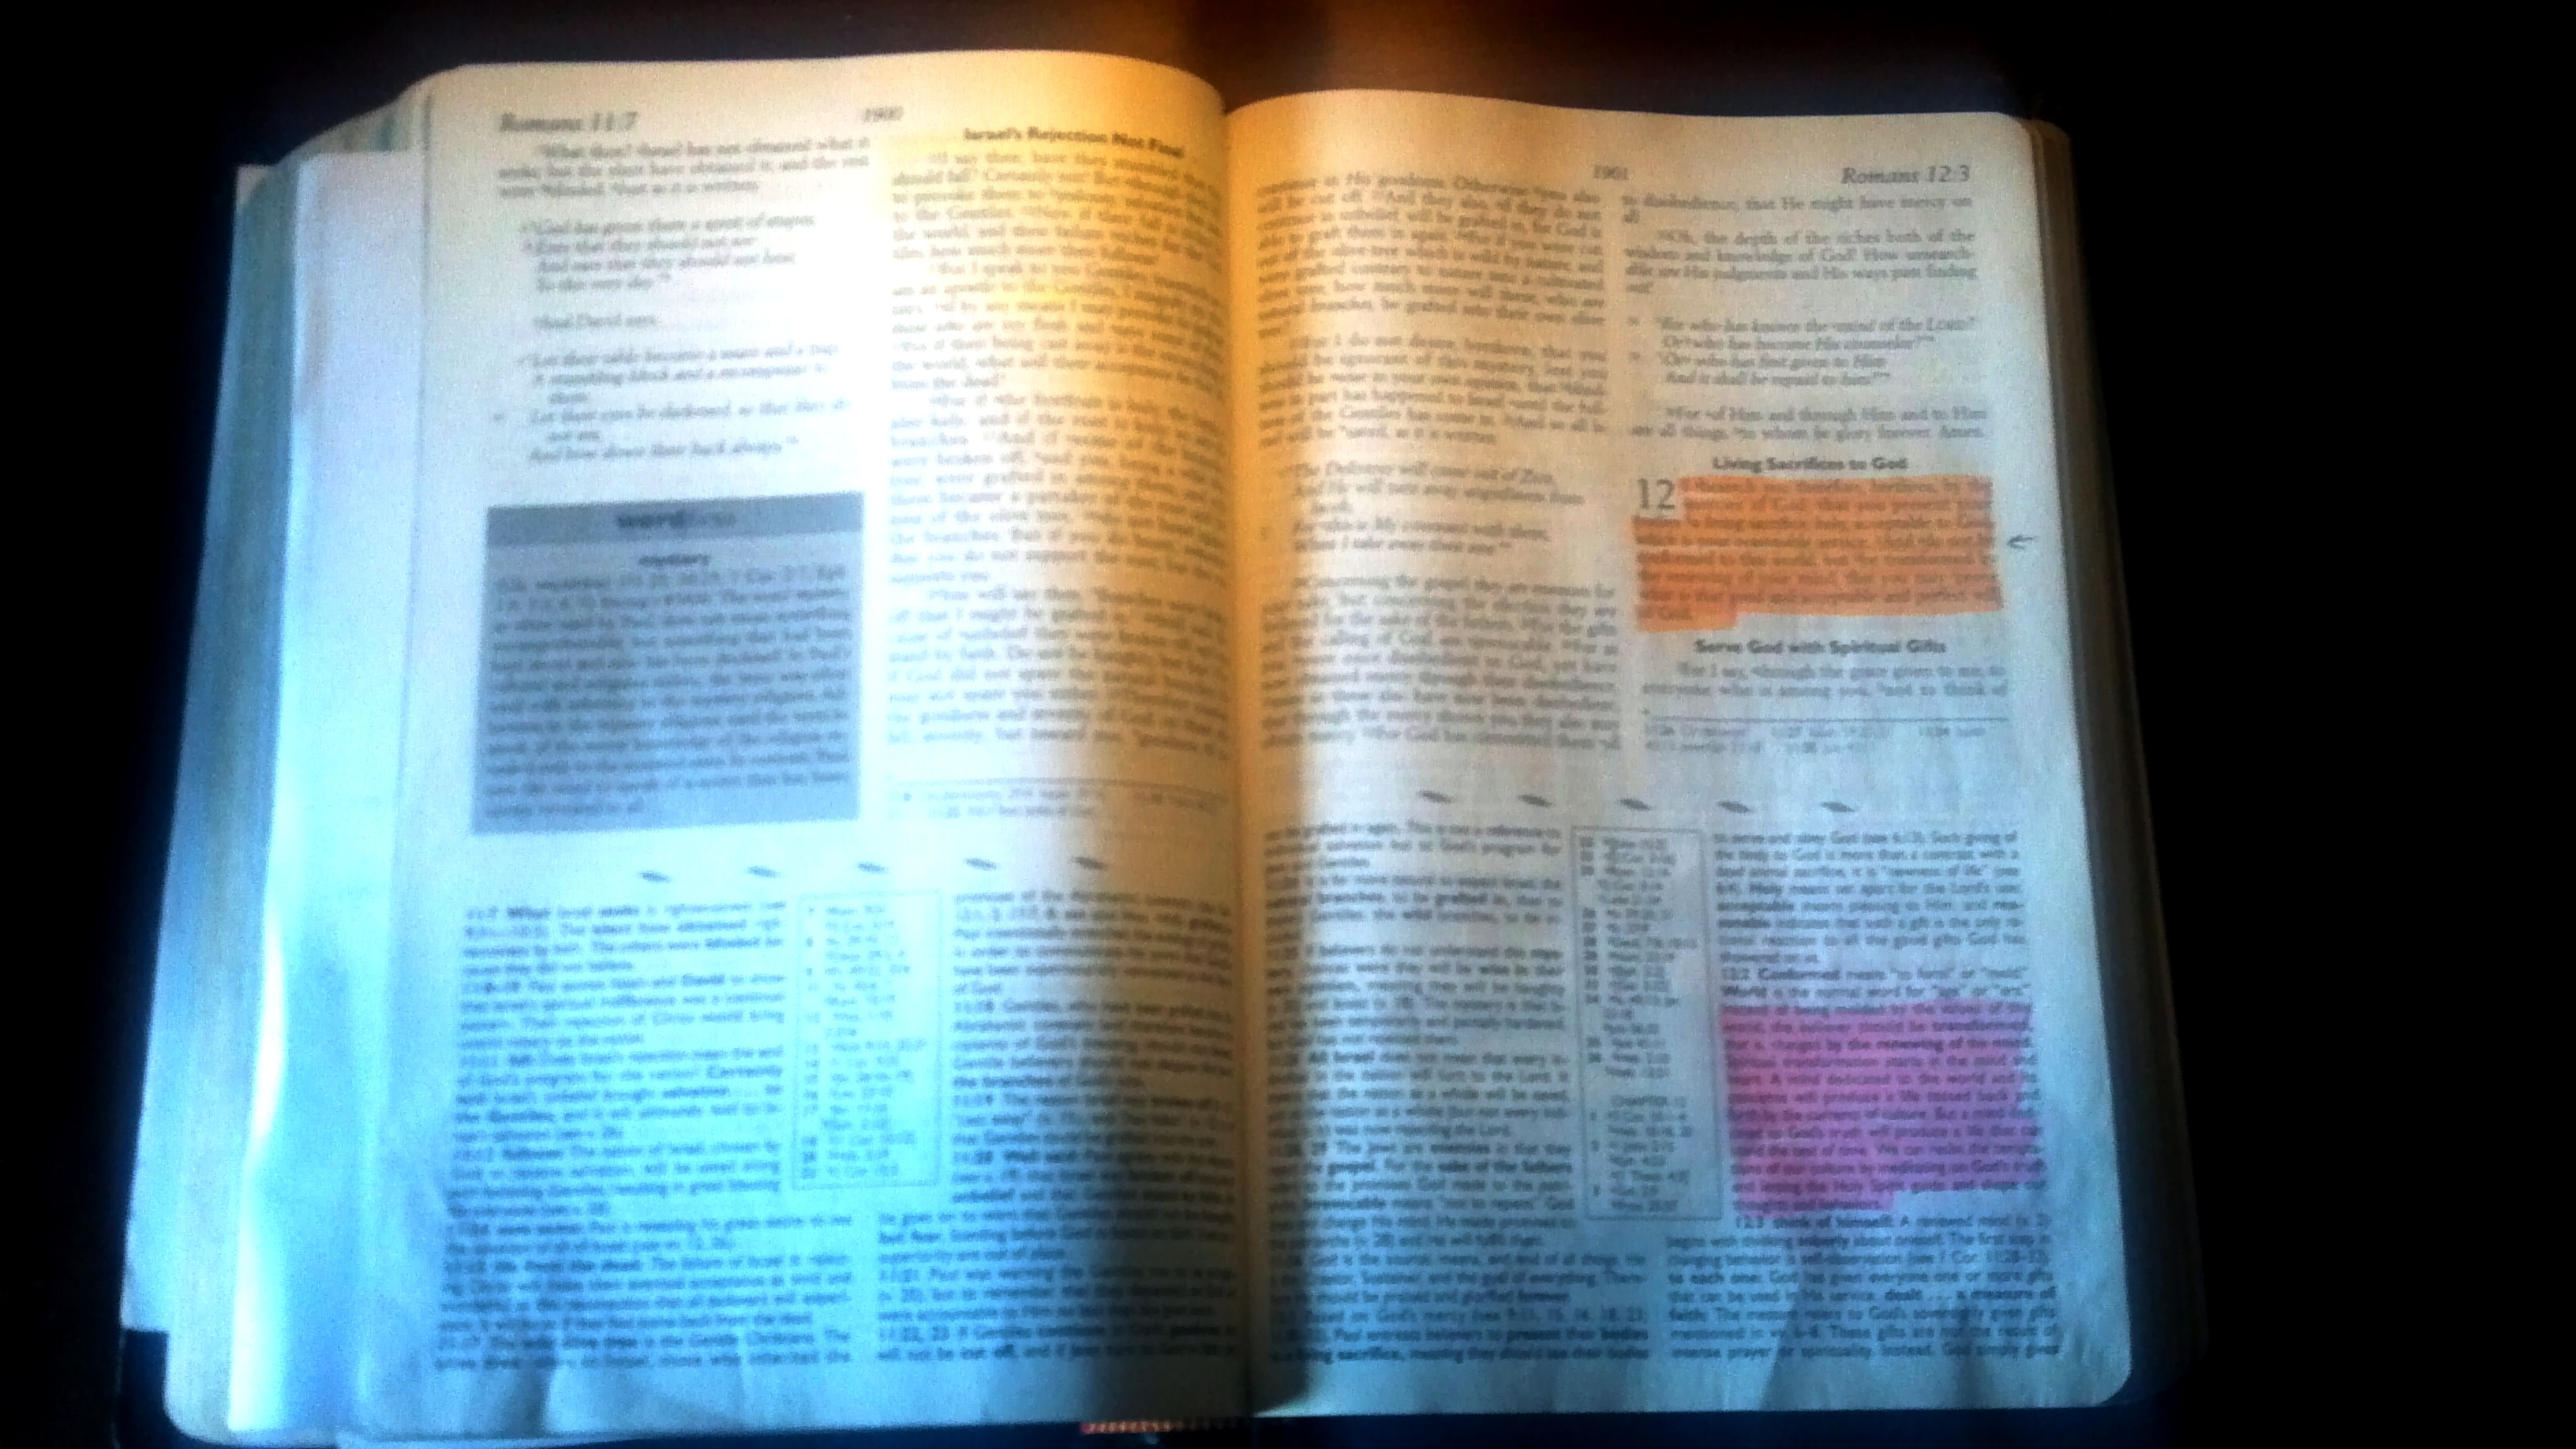 THE BIBLE TEACHES US TO STUDY TO SHOW OURSELVES APPROVED. (PHOTO BY PASTOR DAVIS)